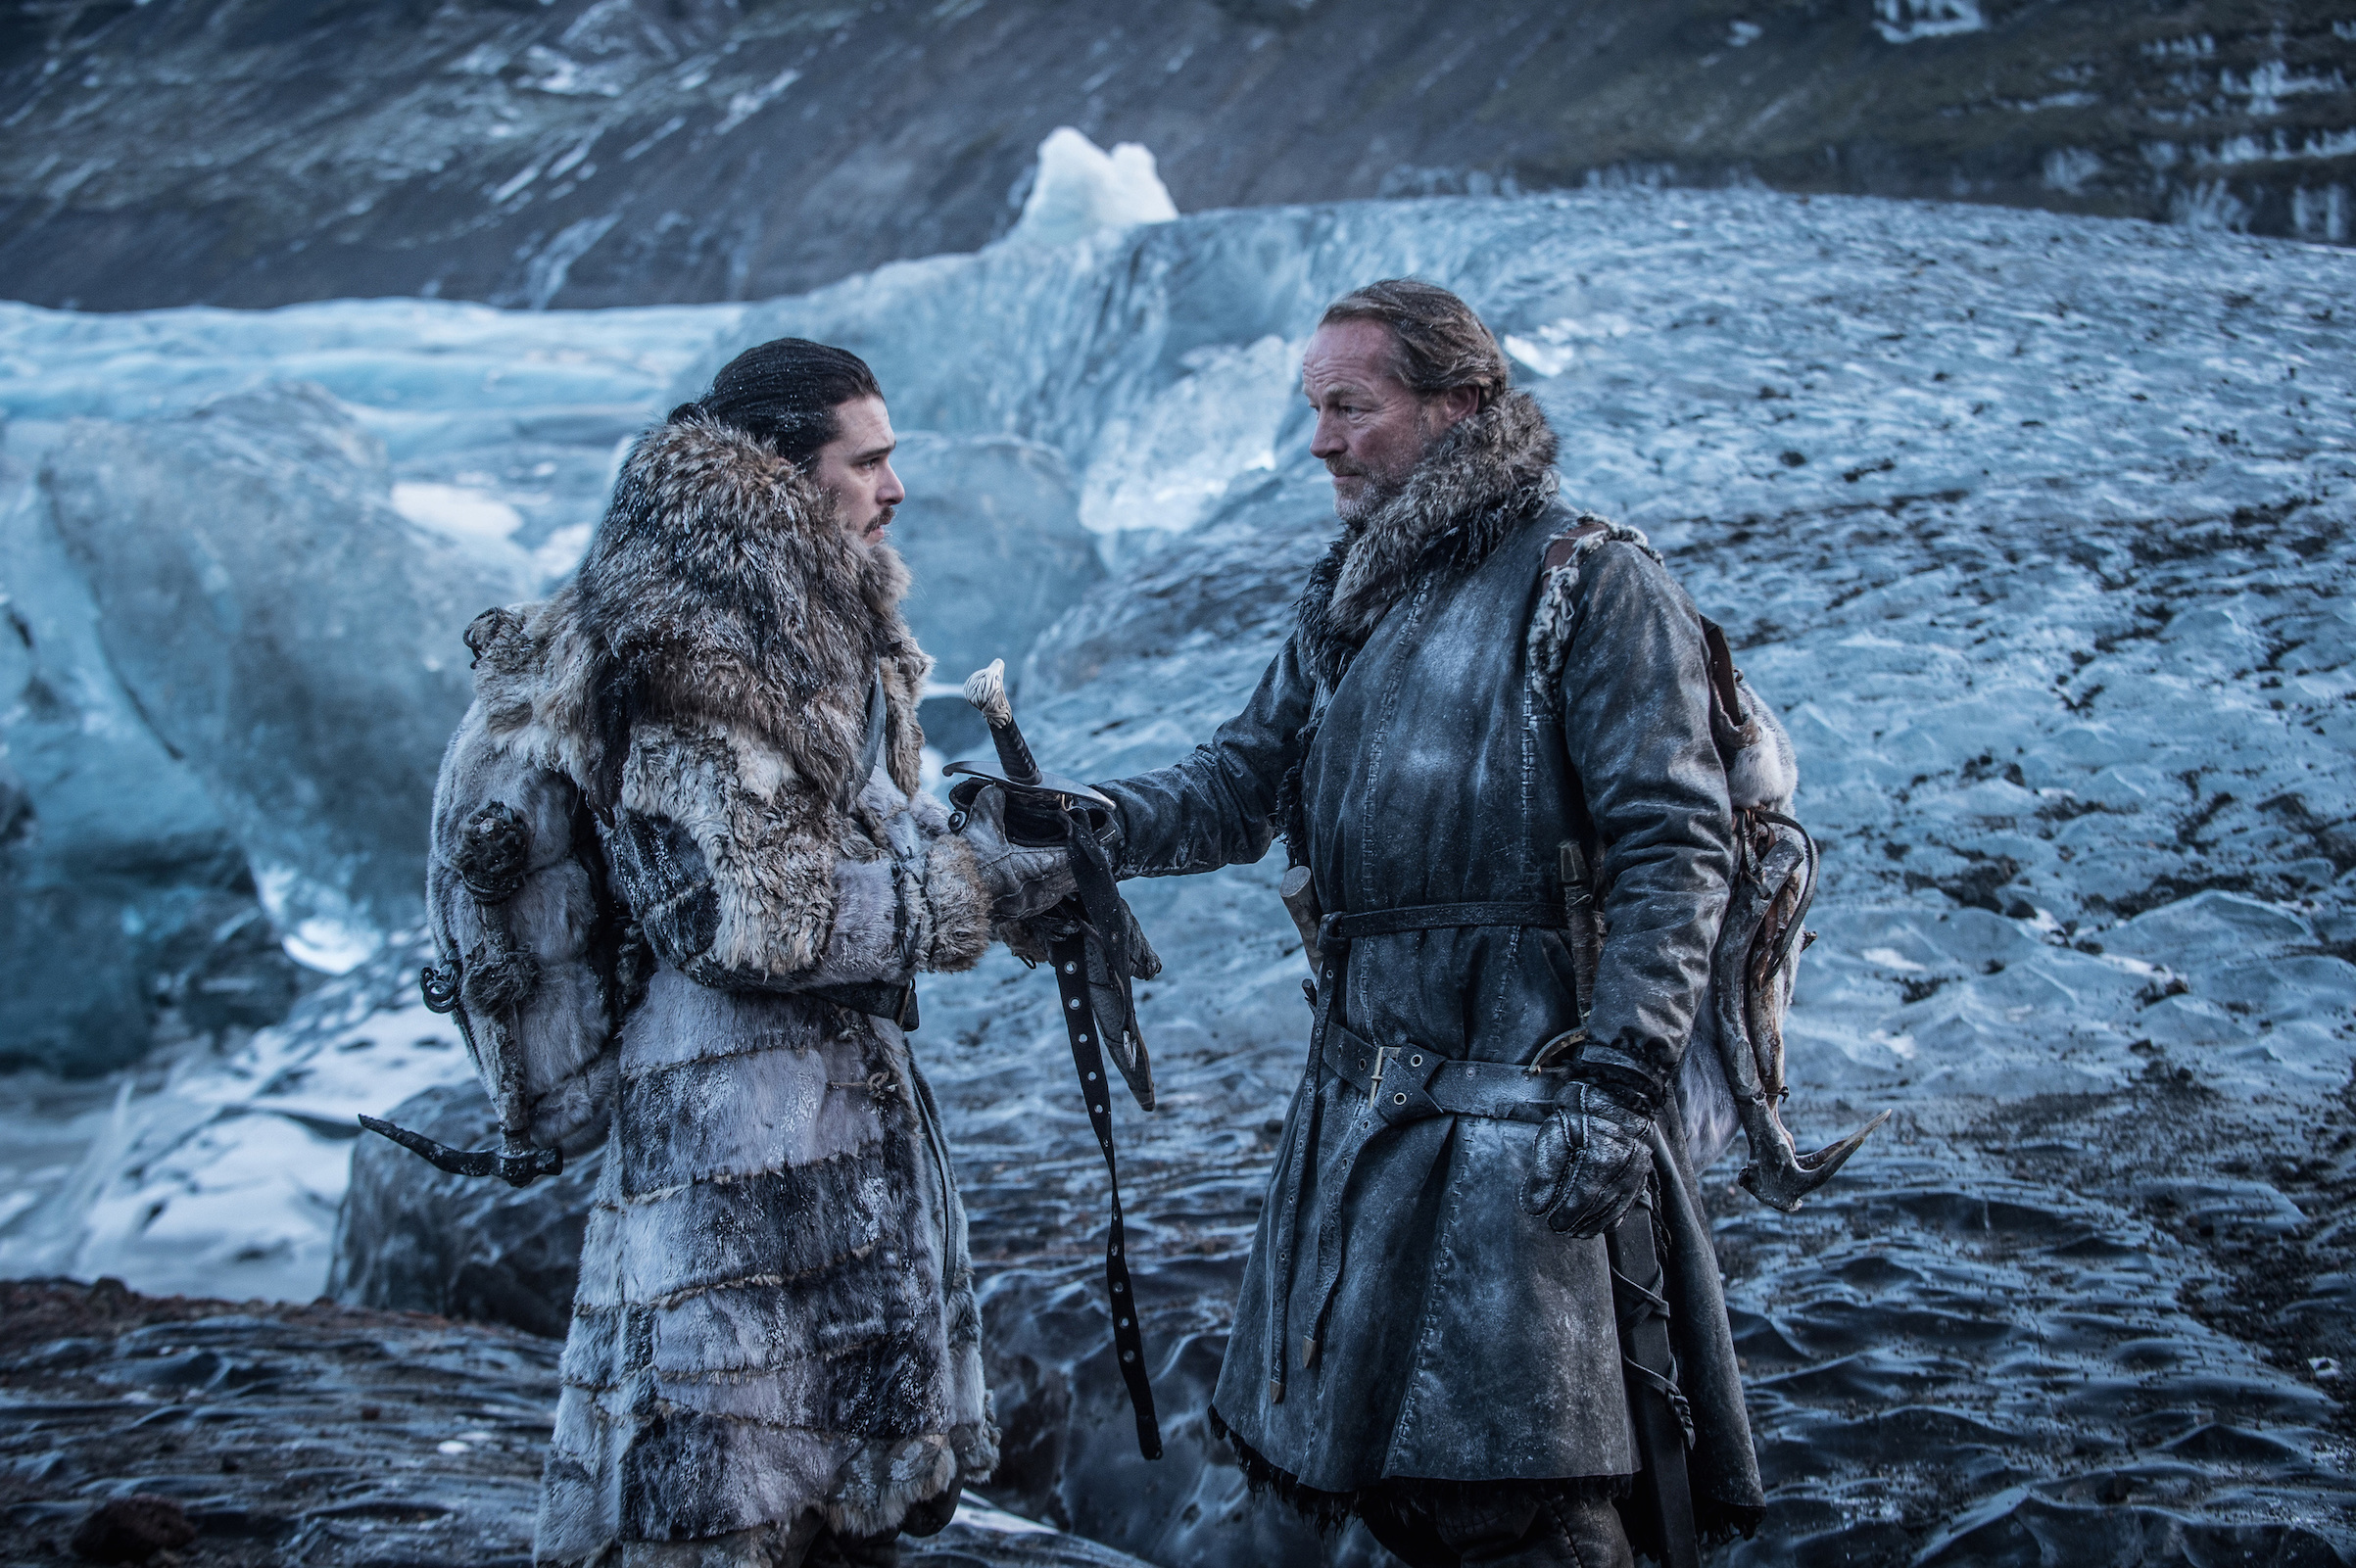 Kit Harington and Iain Glen in a scene from Game of Thrones